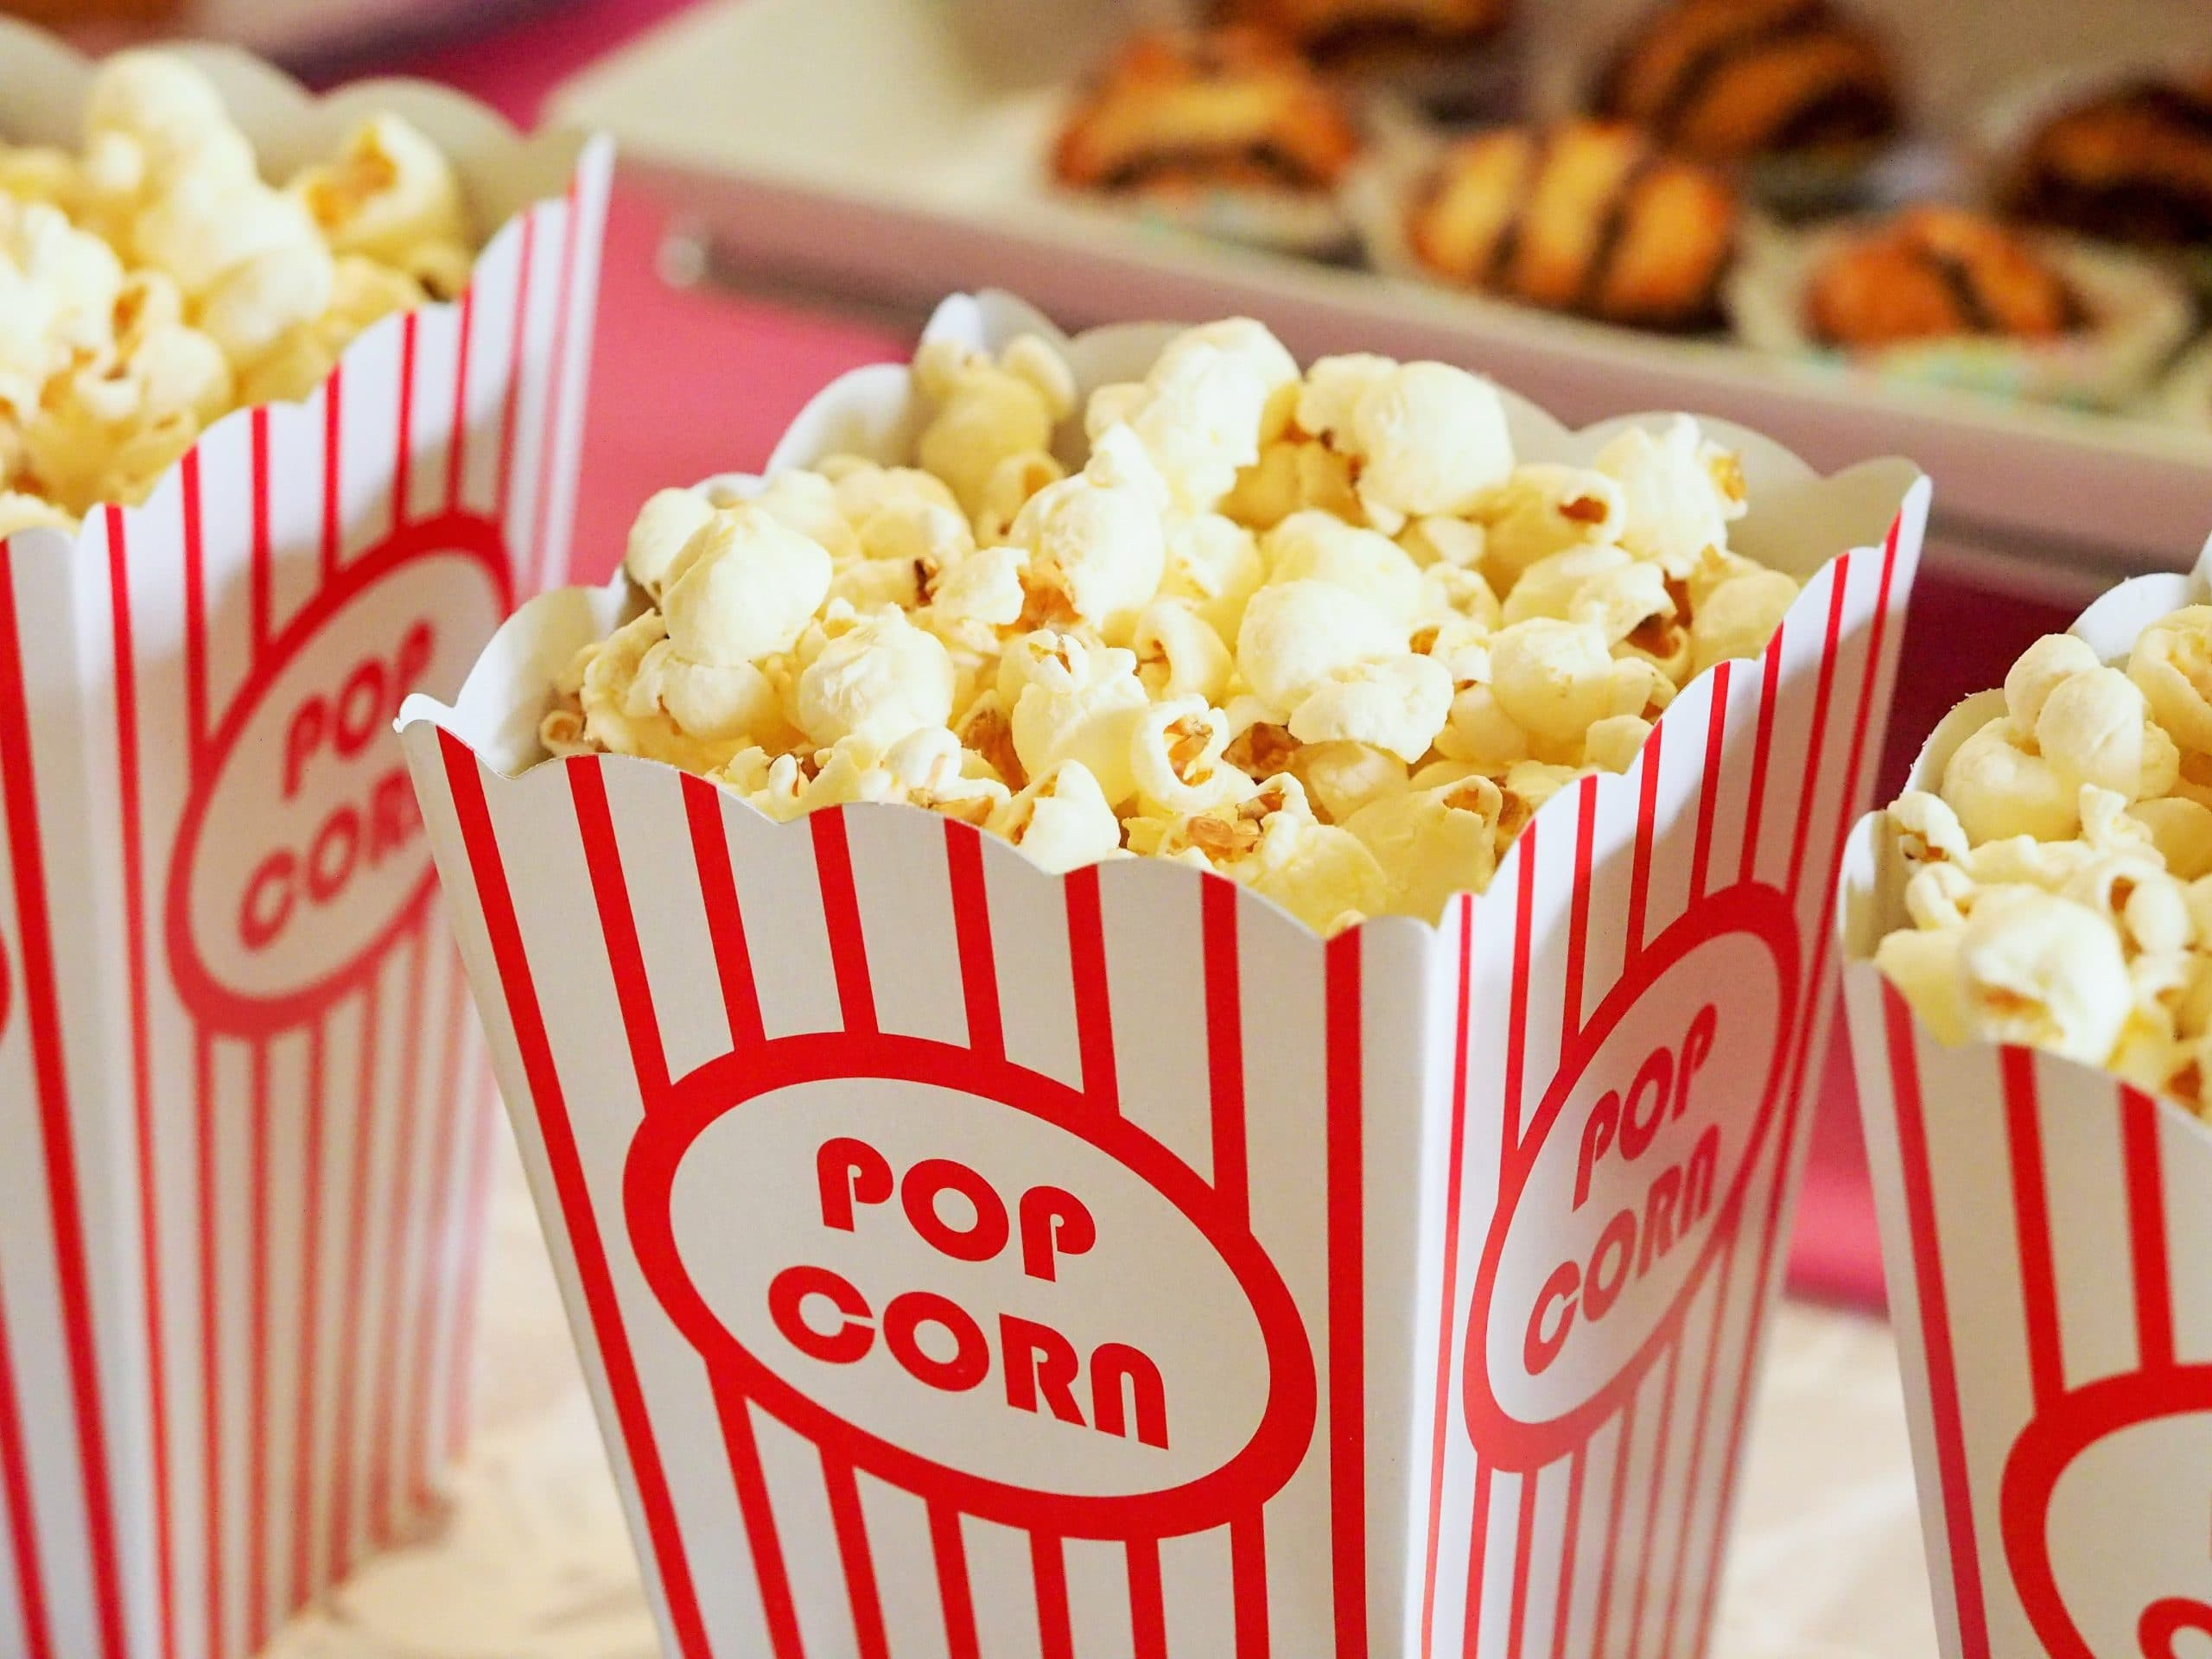 red and white pop corn bag filled with popcorn